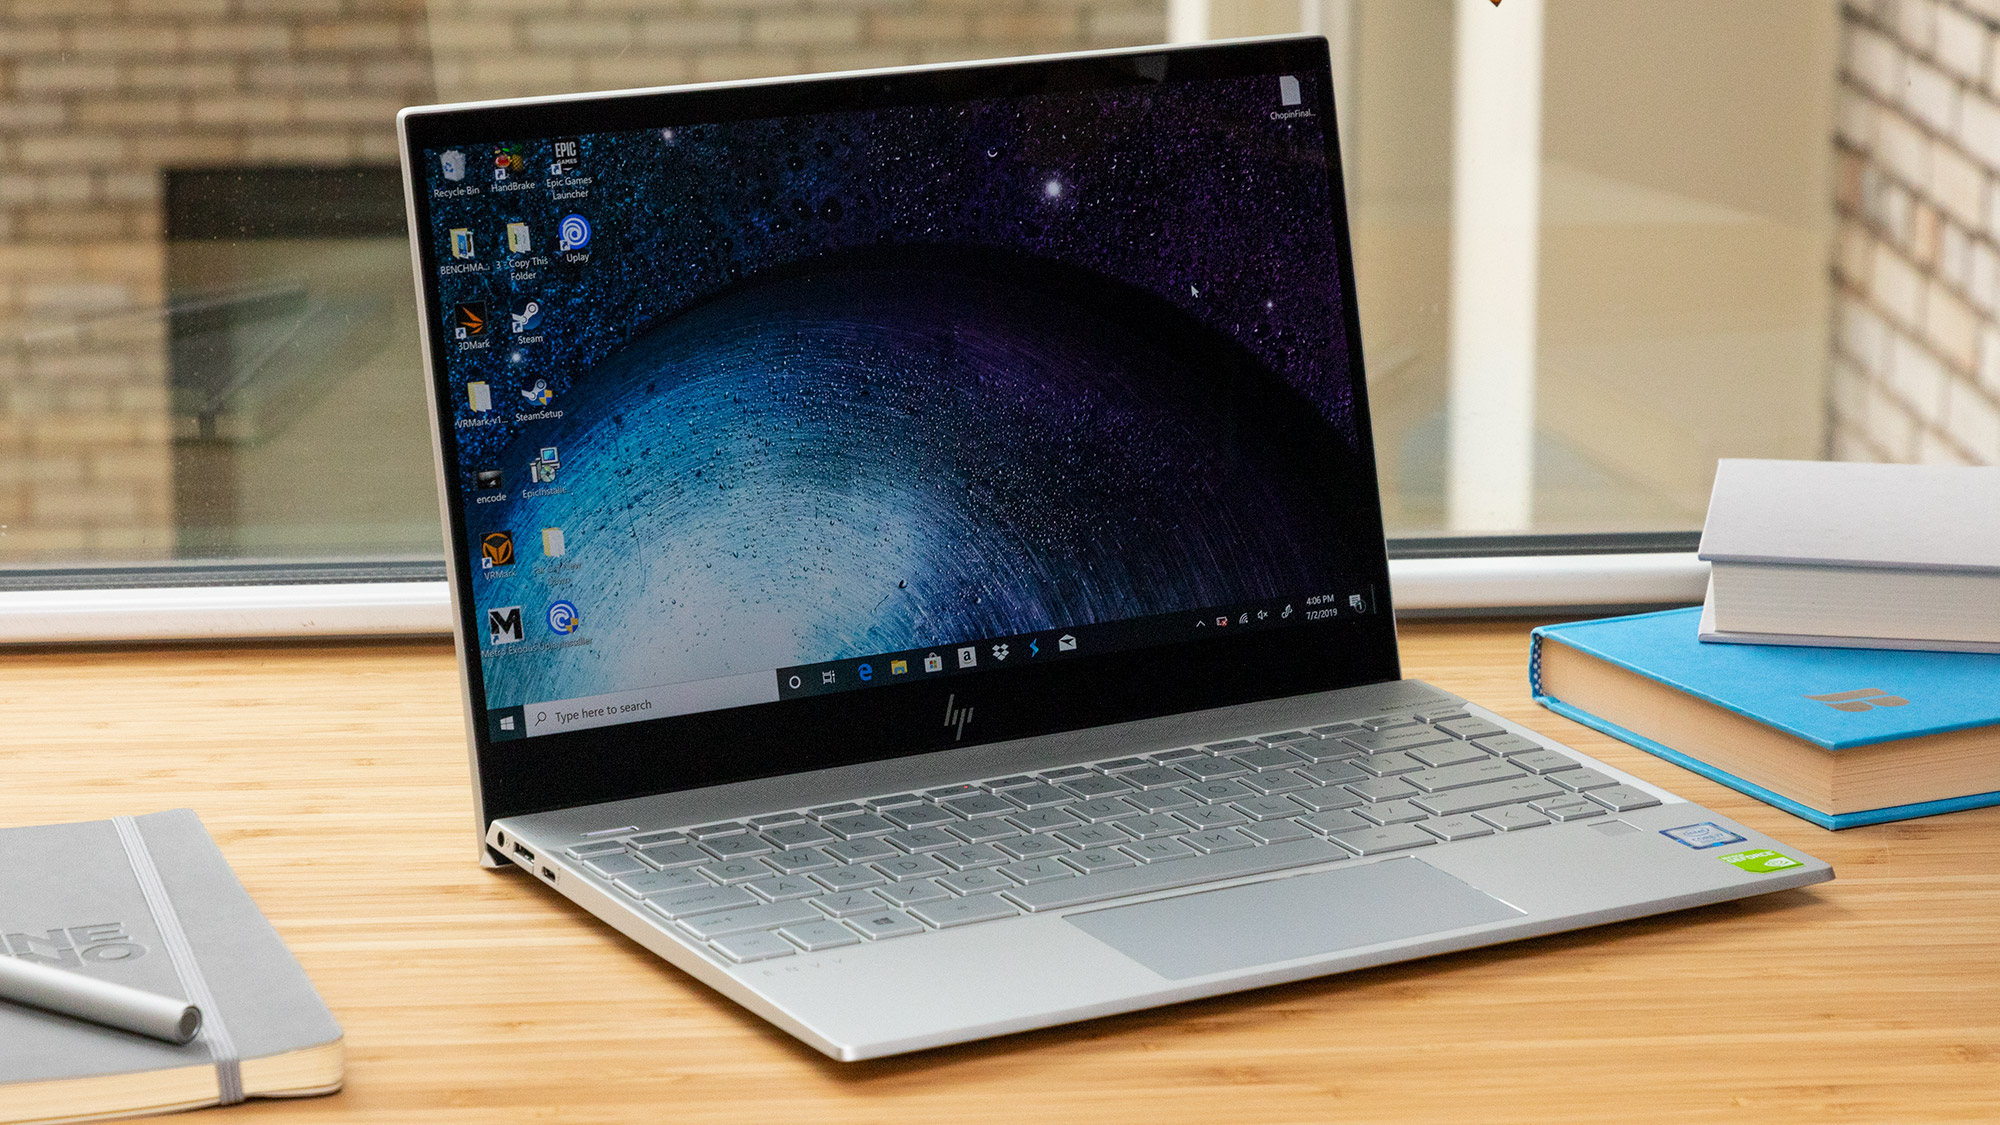 HP Envy 13 (2019) Review - Full Review and Benchmarks | Laptop Mag